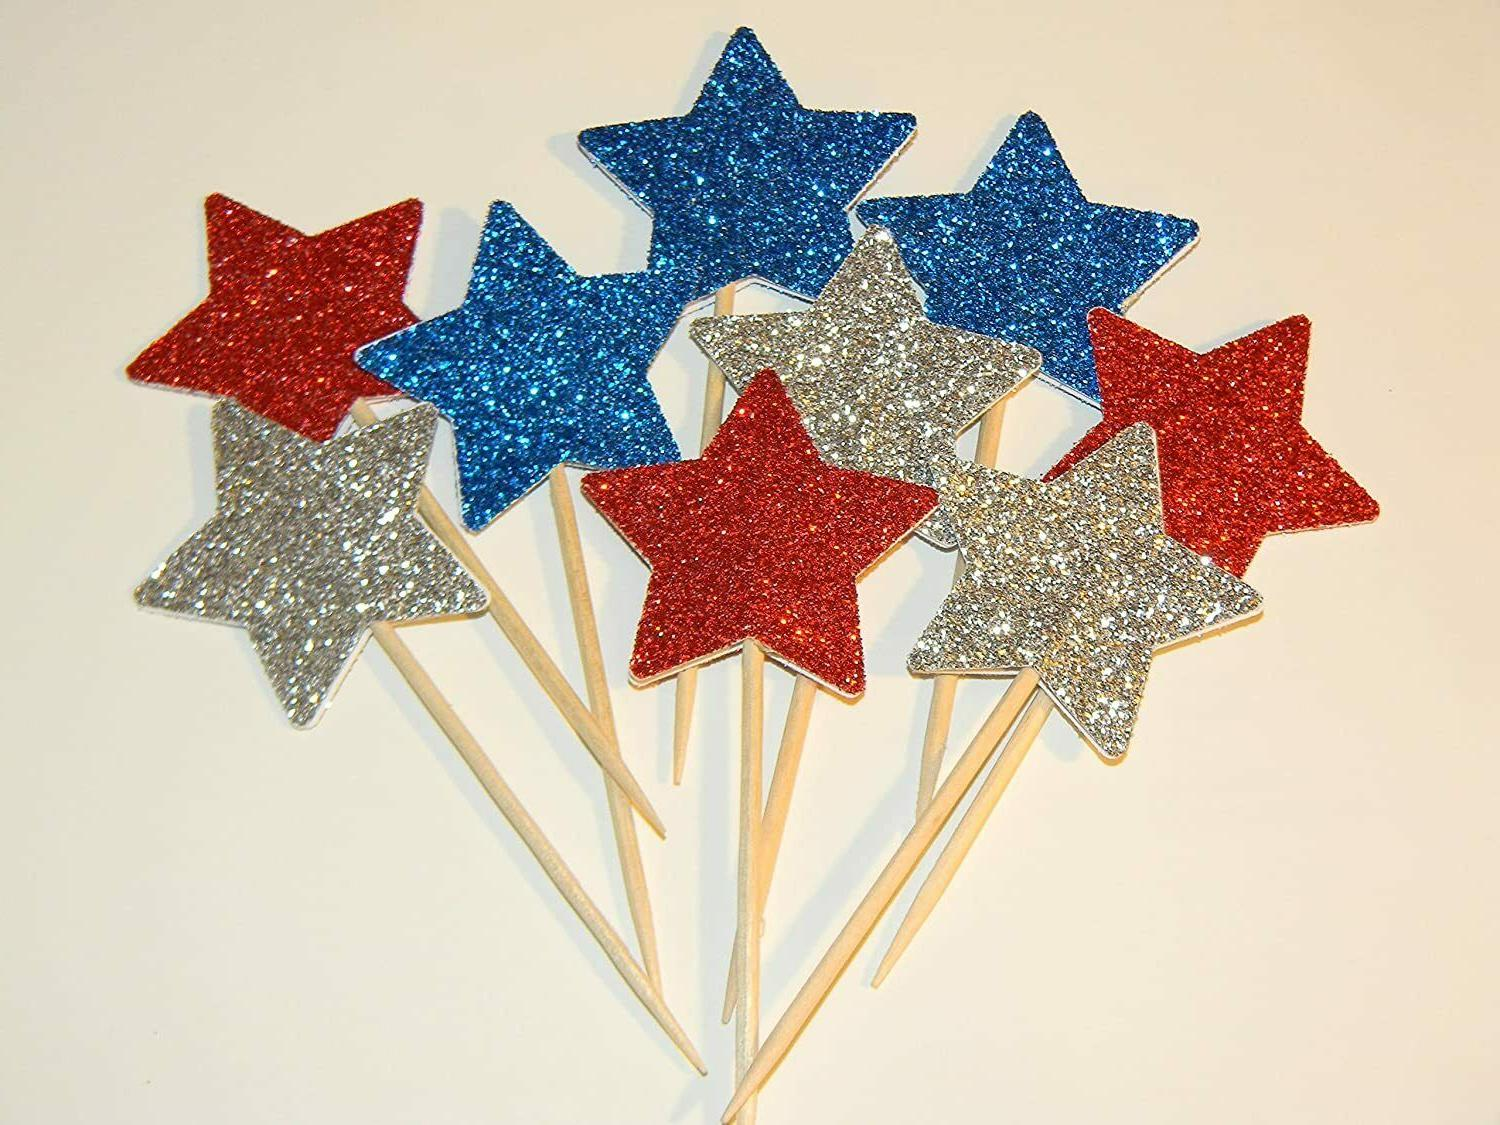 24 red silver and blue glitter star